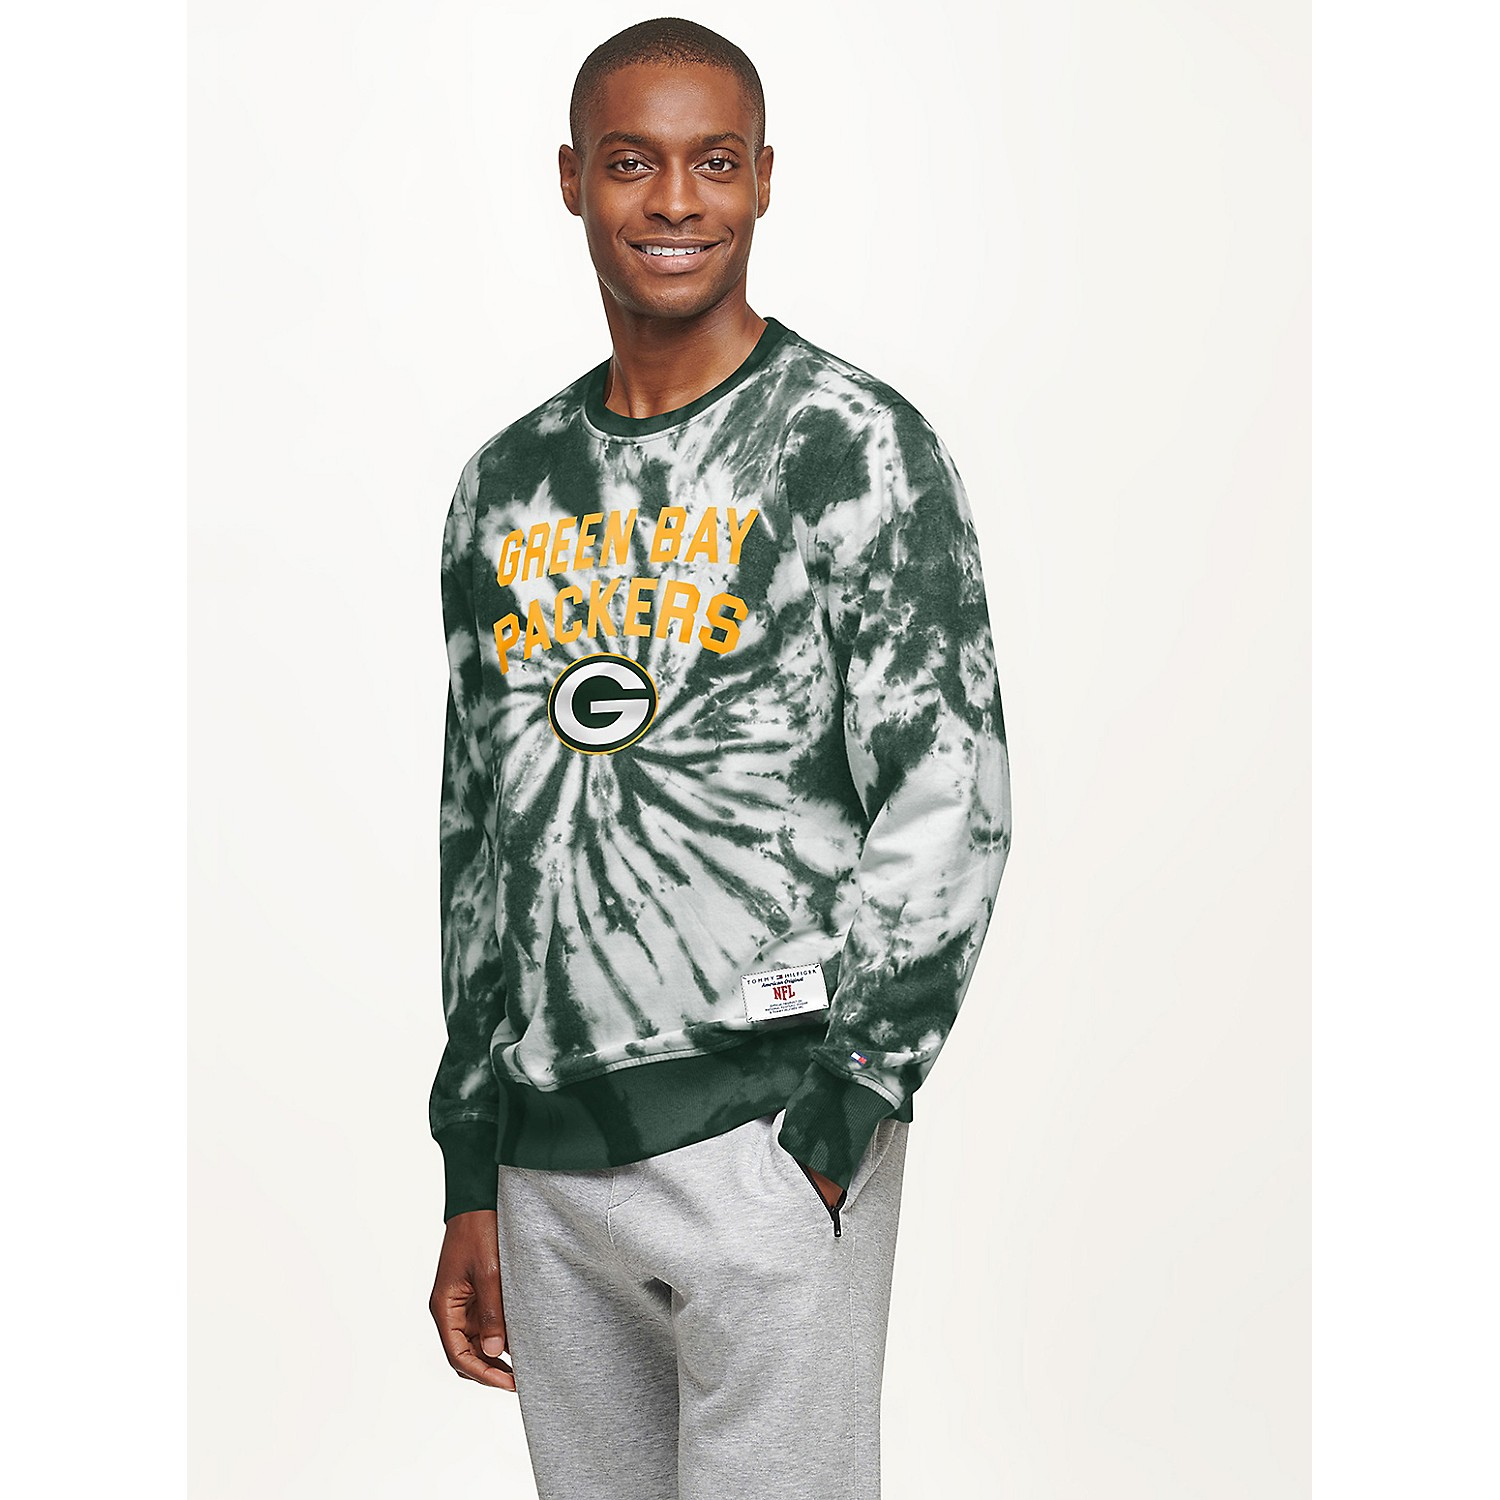 TOMMY HILFIGER Green Bay Packers Tie-Dye Sweatshirt